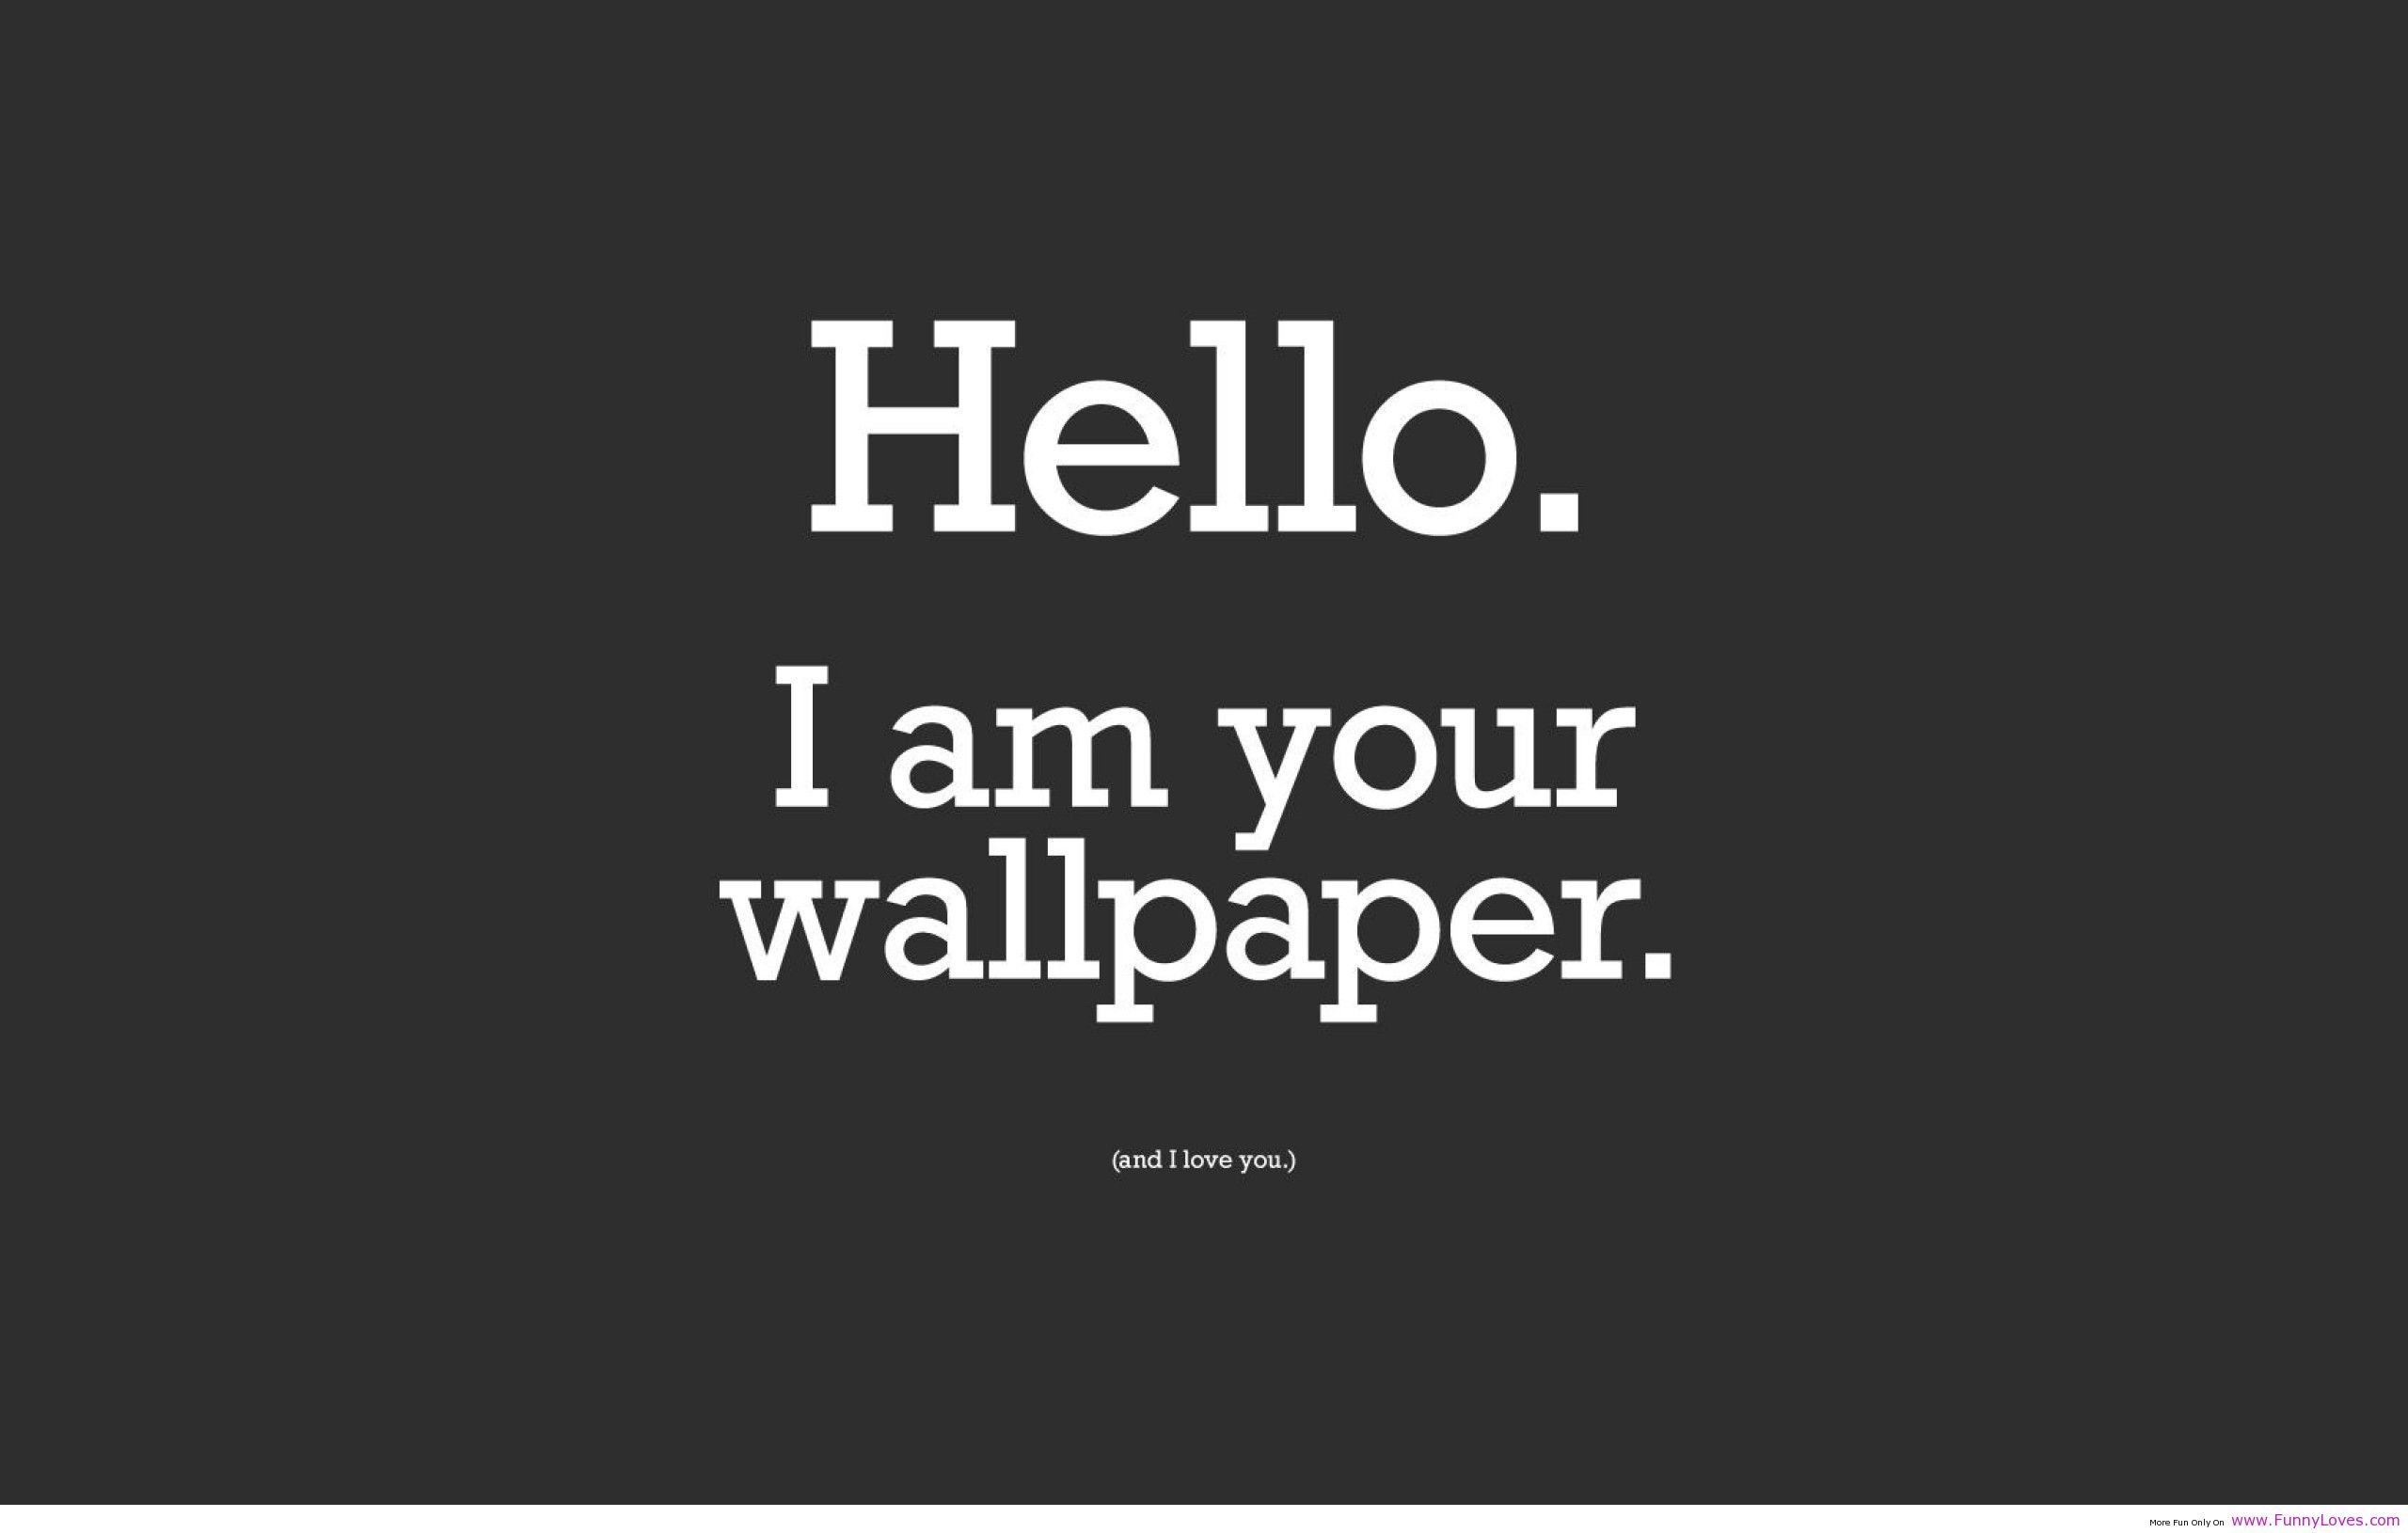 I Love You Too Wallpaper Funny Quotes Wallpaper Funny Phone Wallpaper Cute Wallpapers Quotes